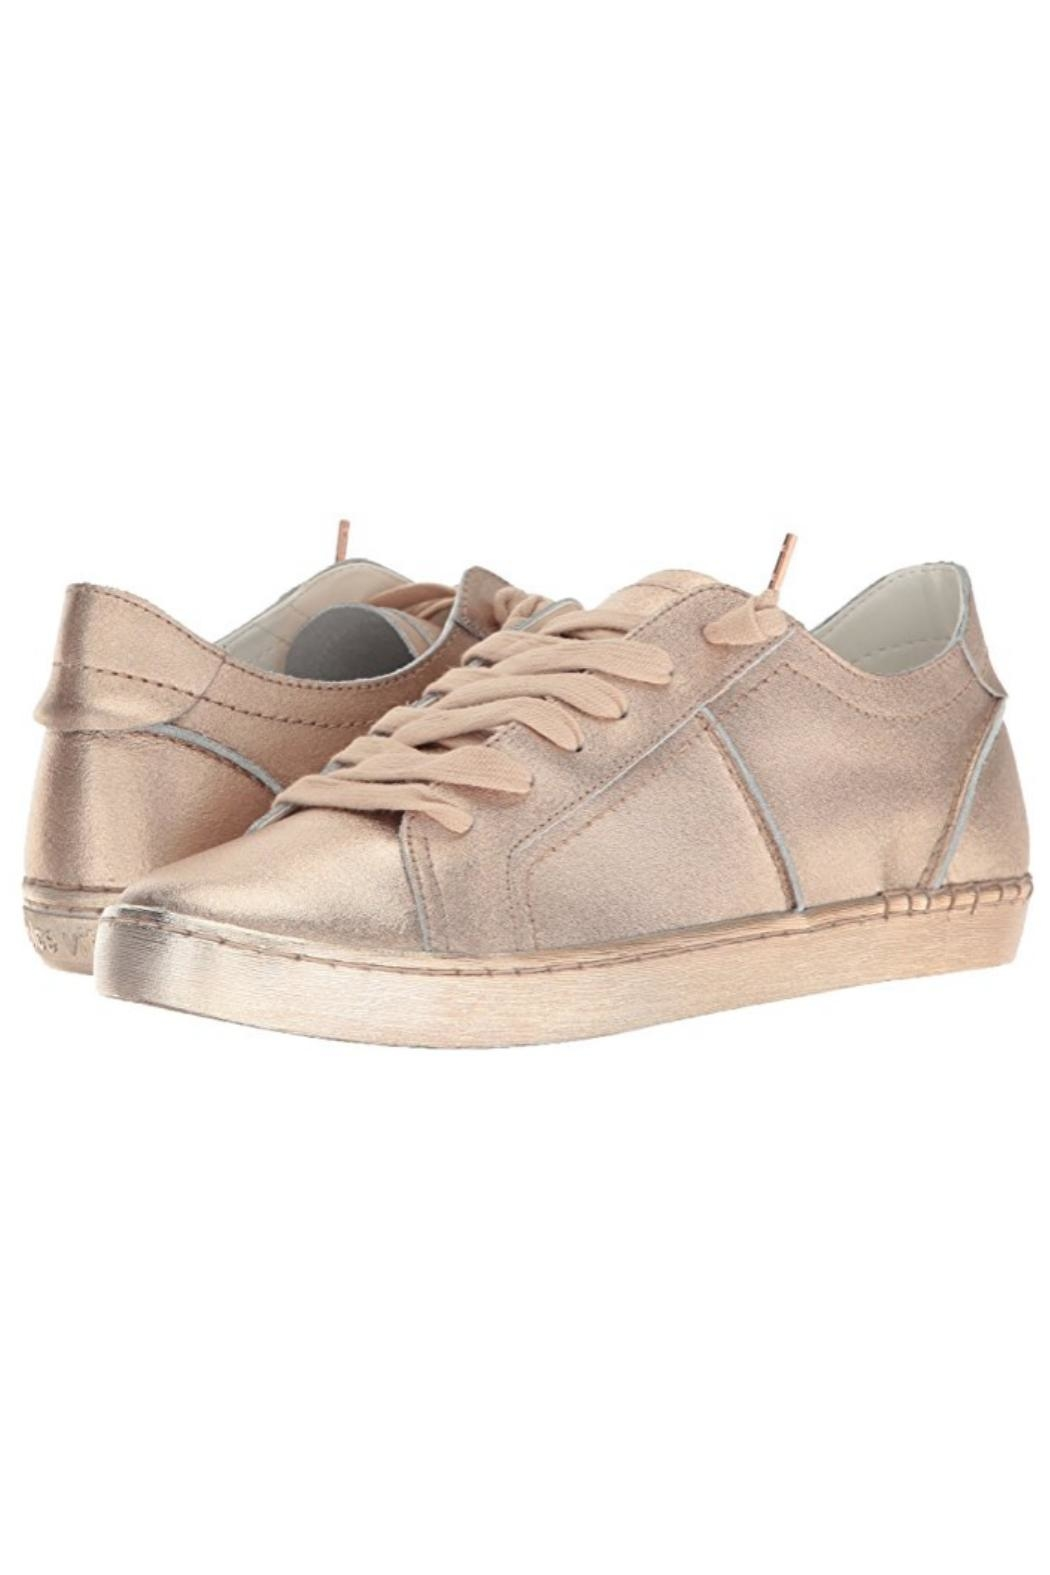 Dolce Vita Zalen Metallic Lace Up Sneaker - Front Cropped Image